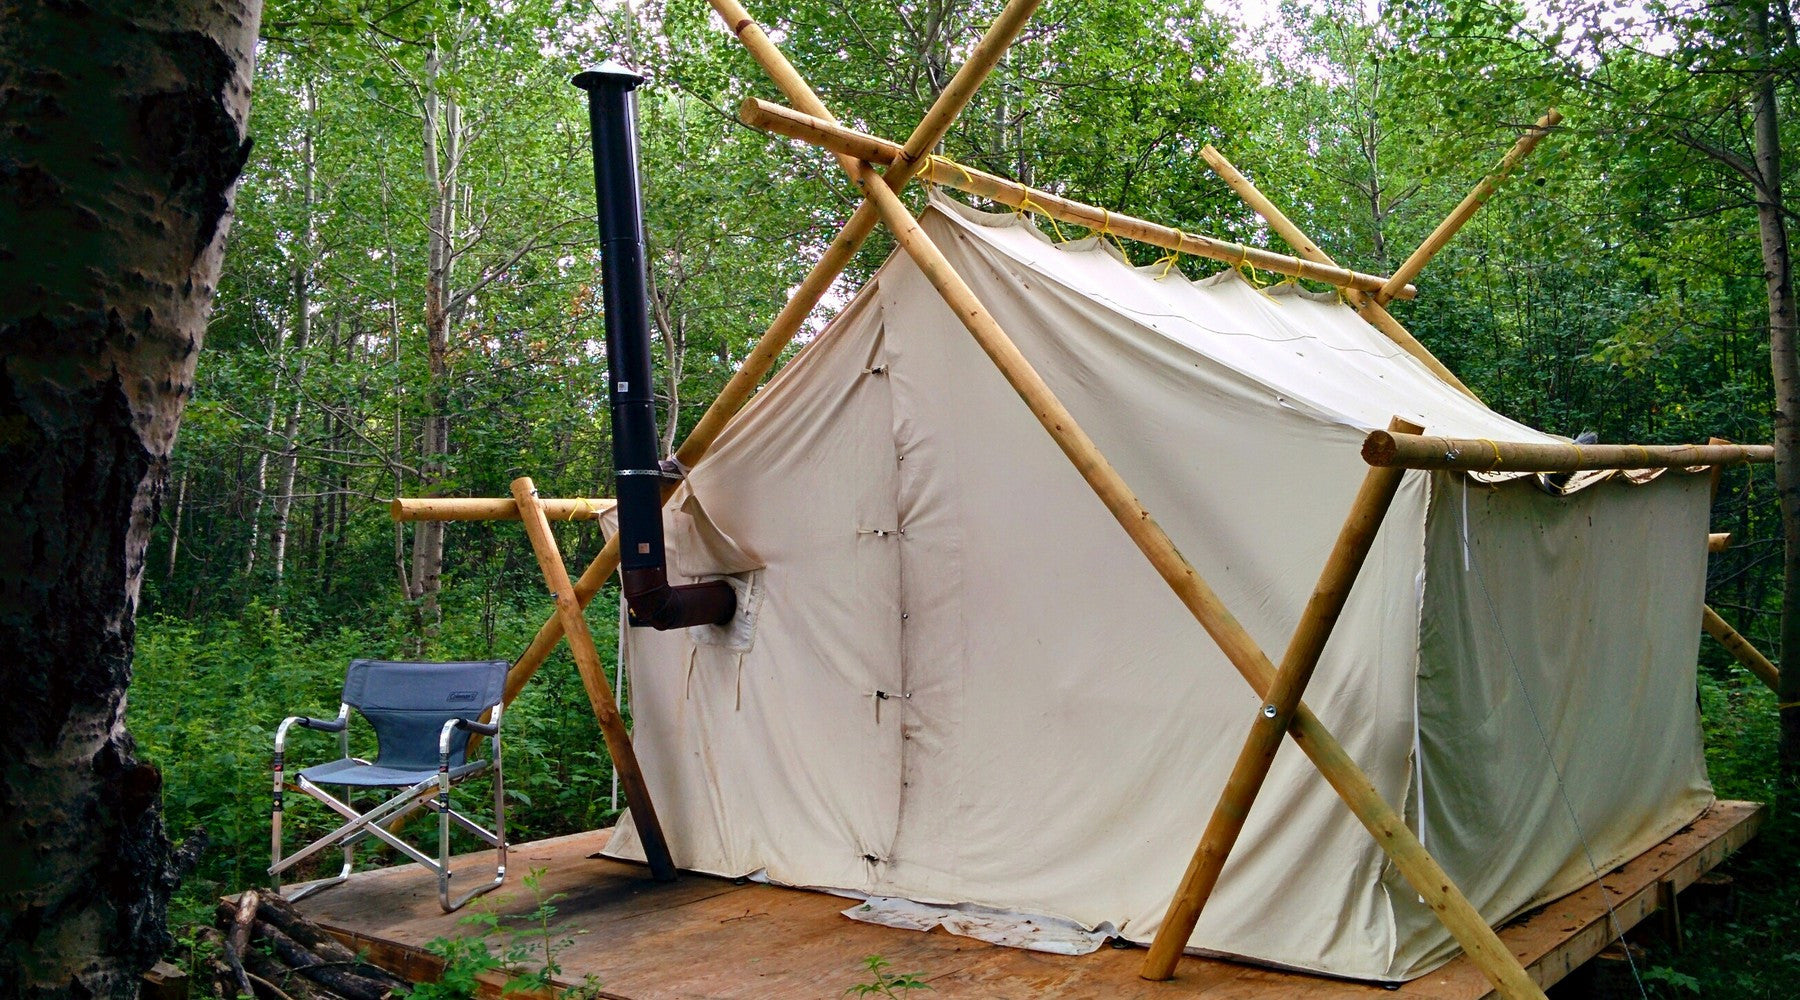 Woods Industrial Prospector Wall Tent : outfitters tent - memphite.com